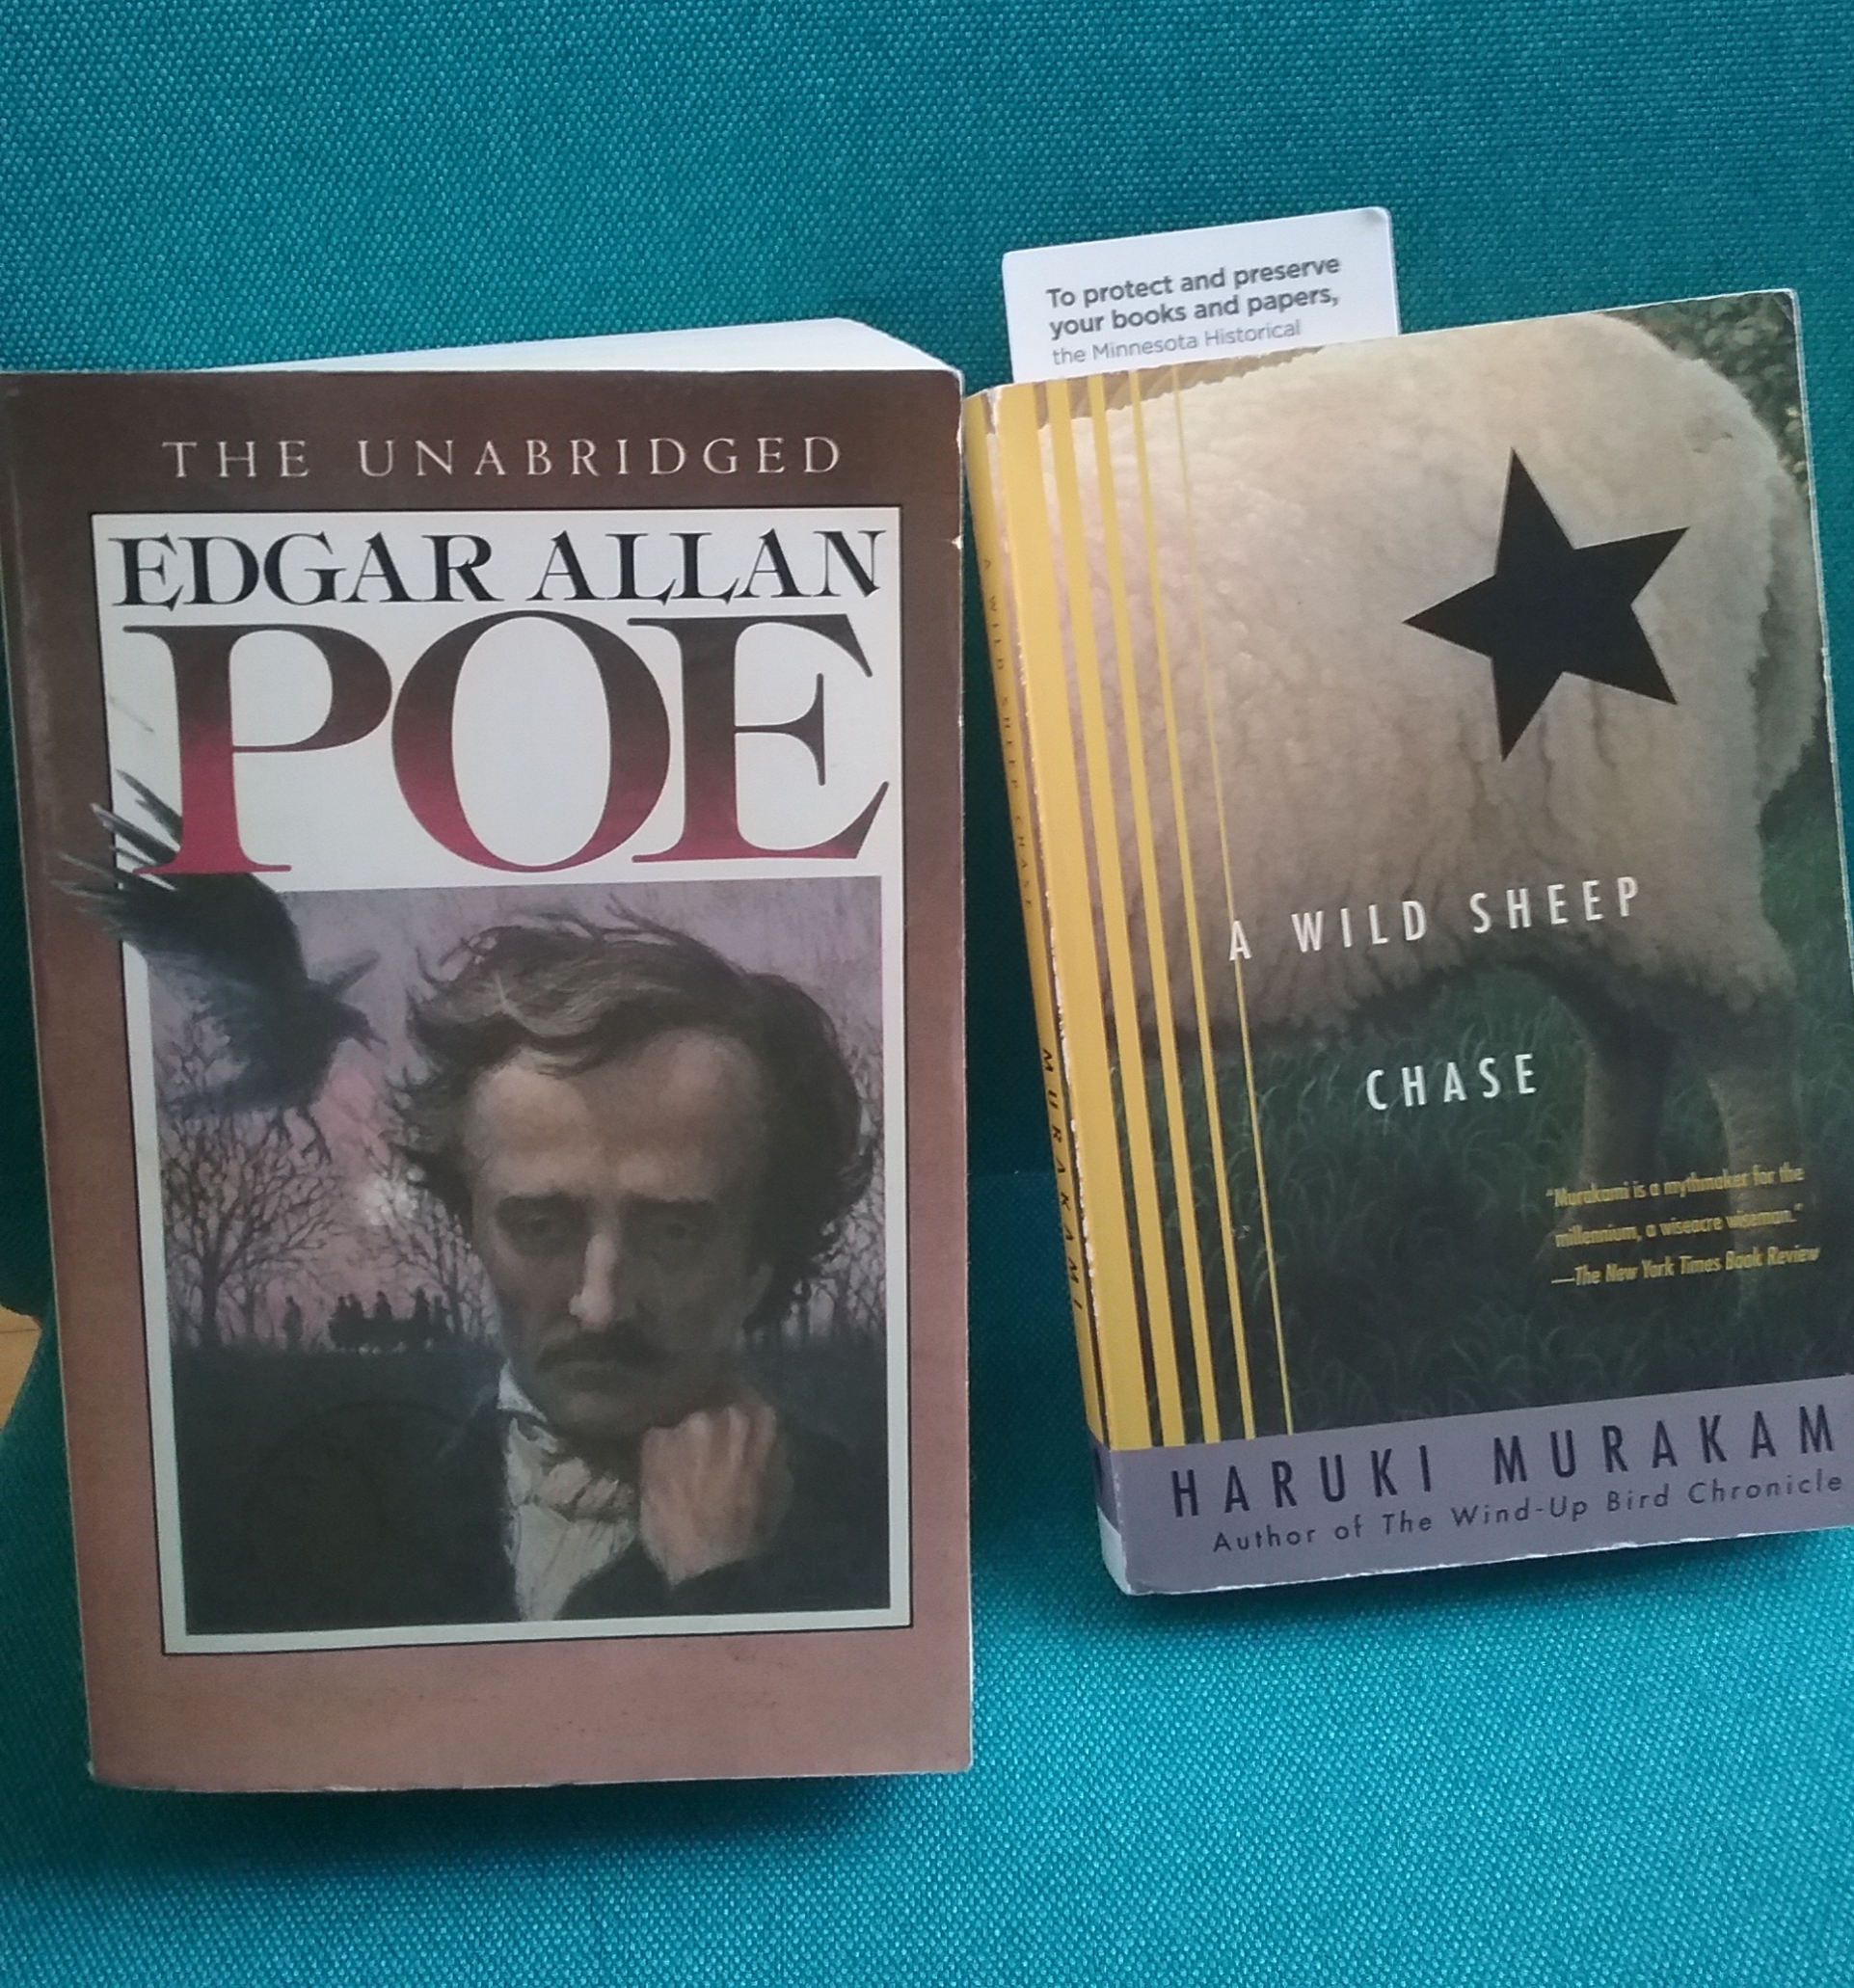 The Unabridged Edgar Allan Poe and A Wild Sheep Chase by Haruki Murakami